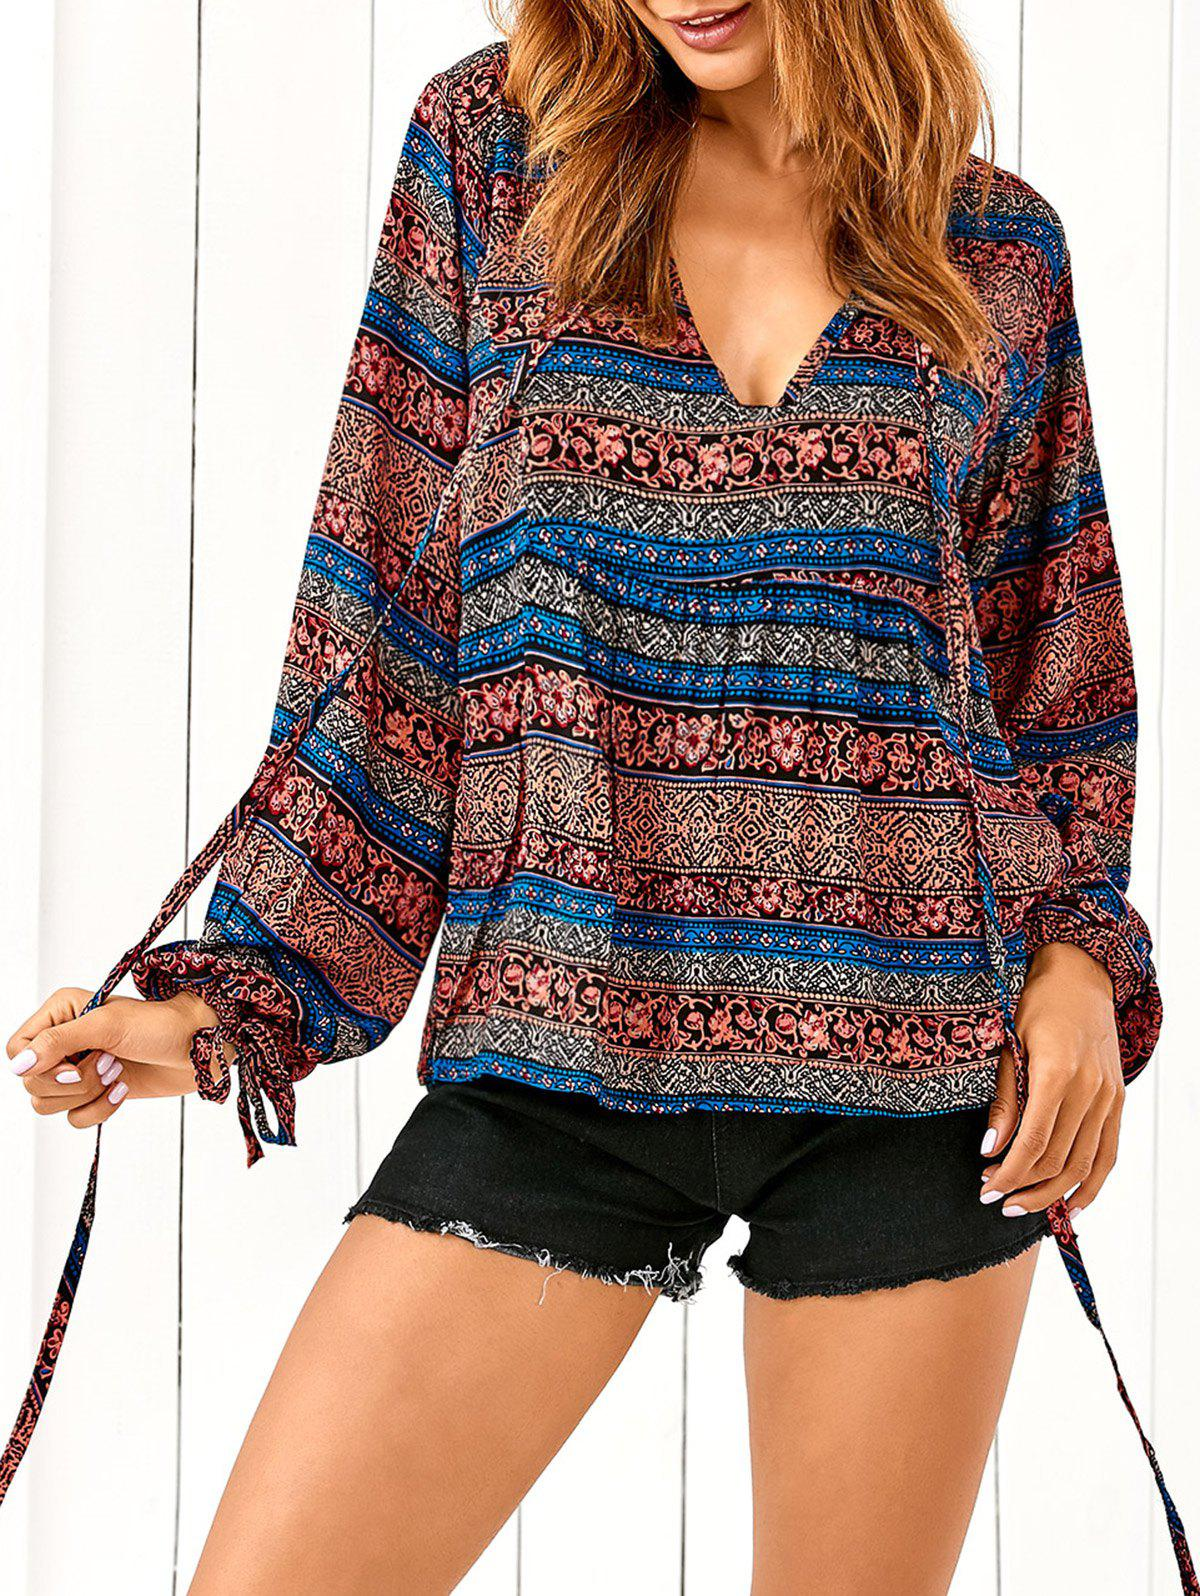 Buy blouses for women at skytmeg.cf There are latest styles for women's blouses.